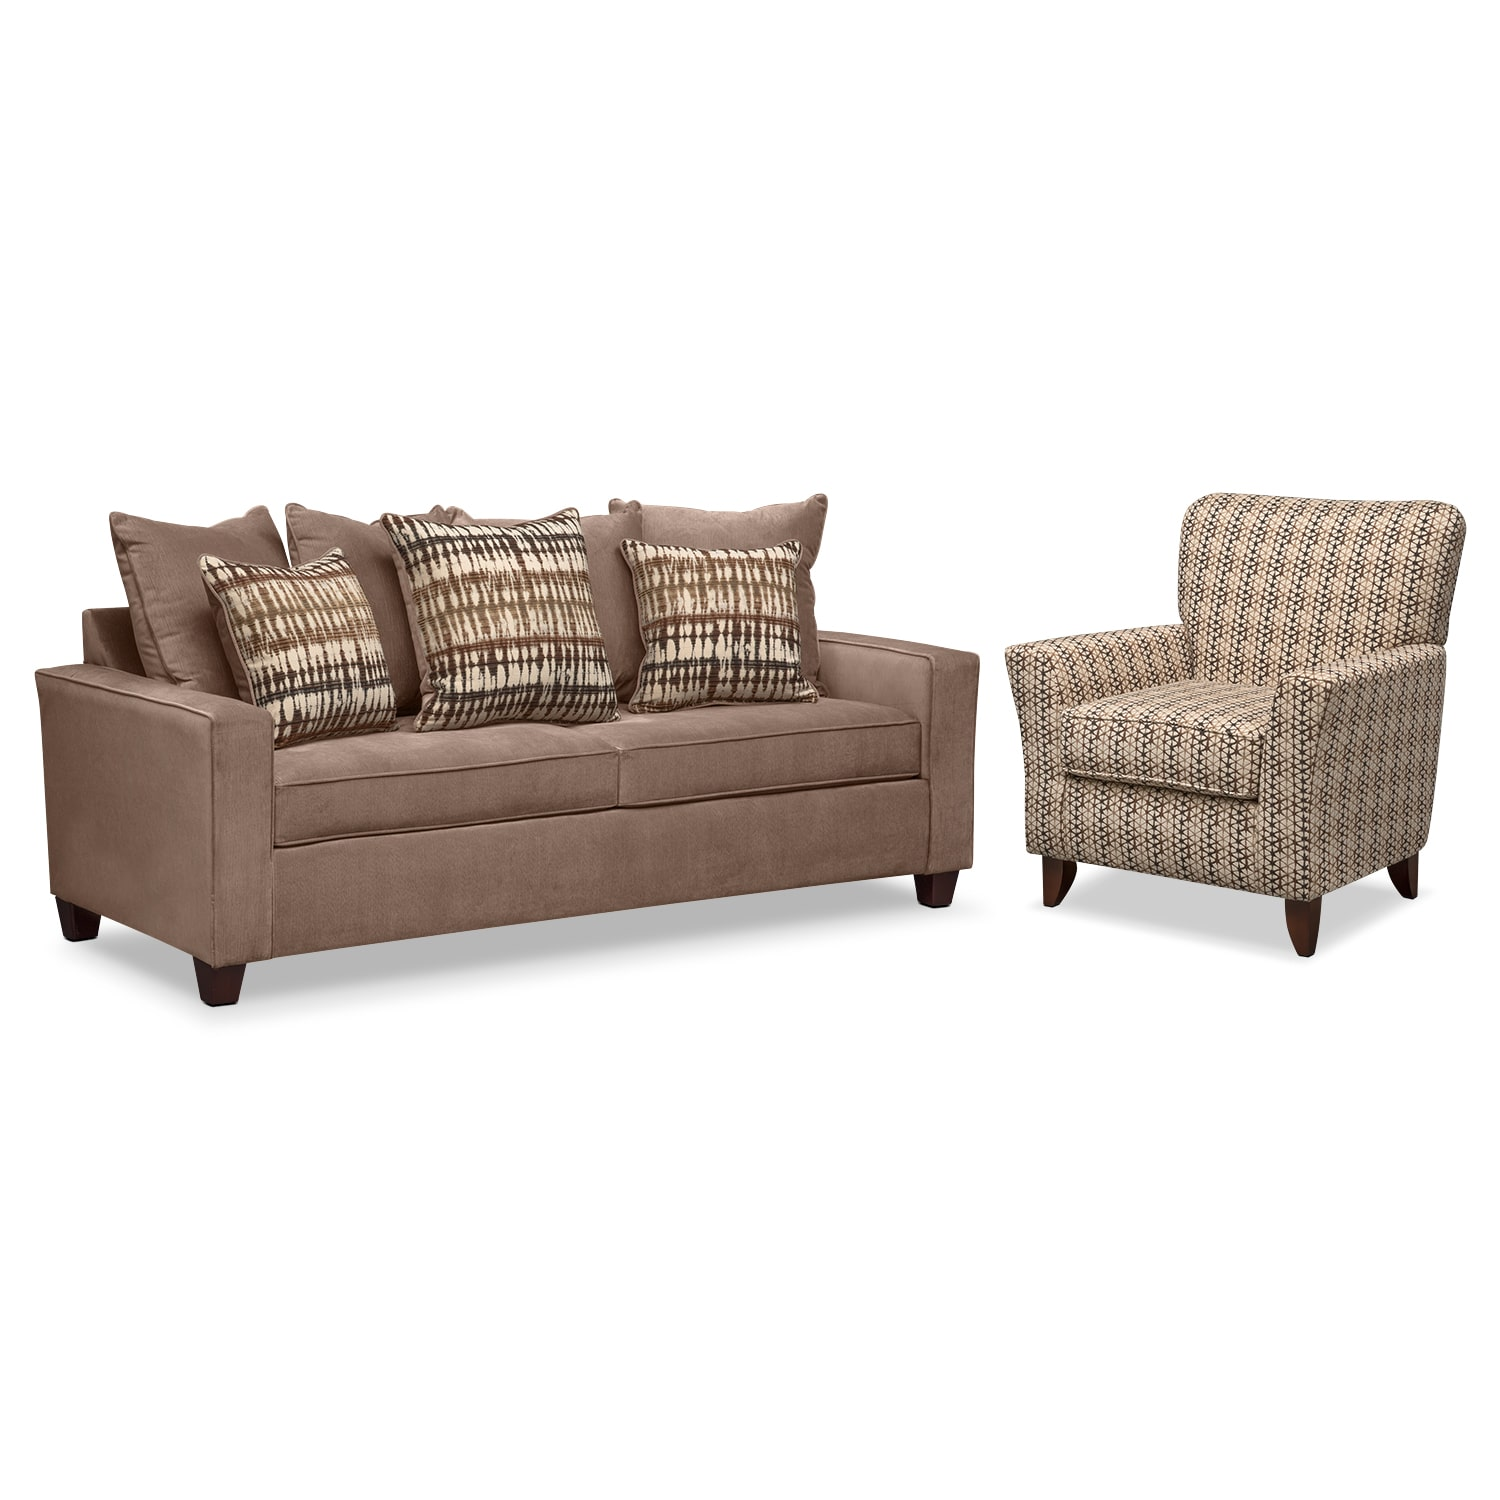 Living Room Furniture - Bryden Queen Memory Foam Sleeper Sofa and Accent Chair Set - Chocolate